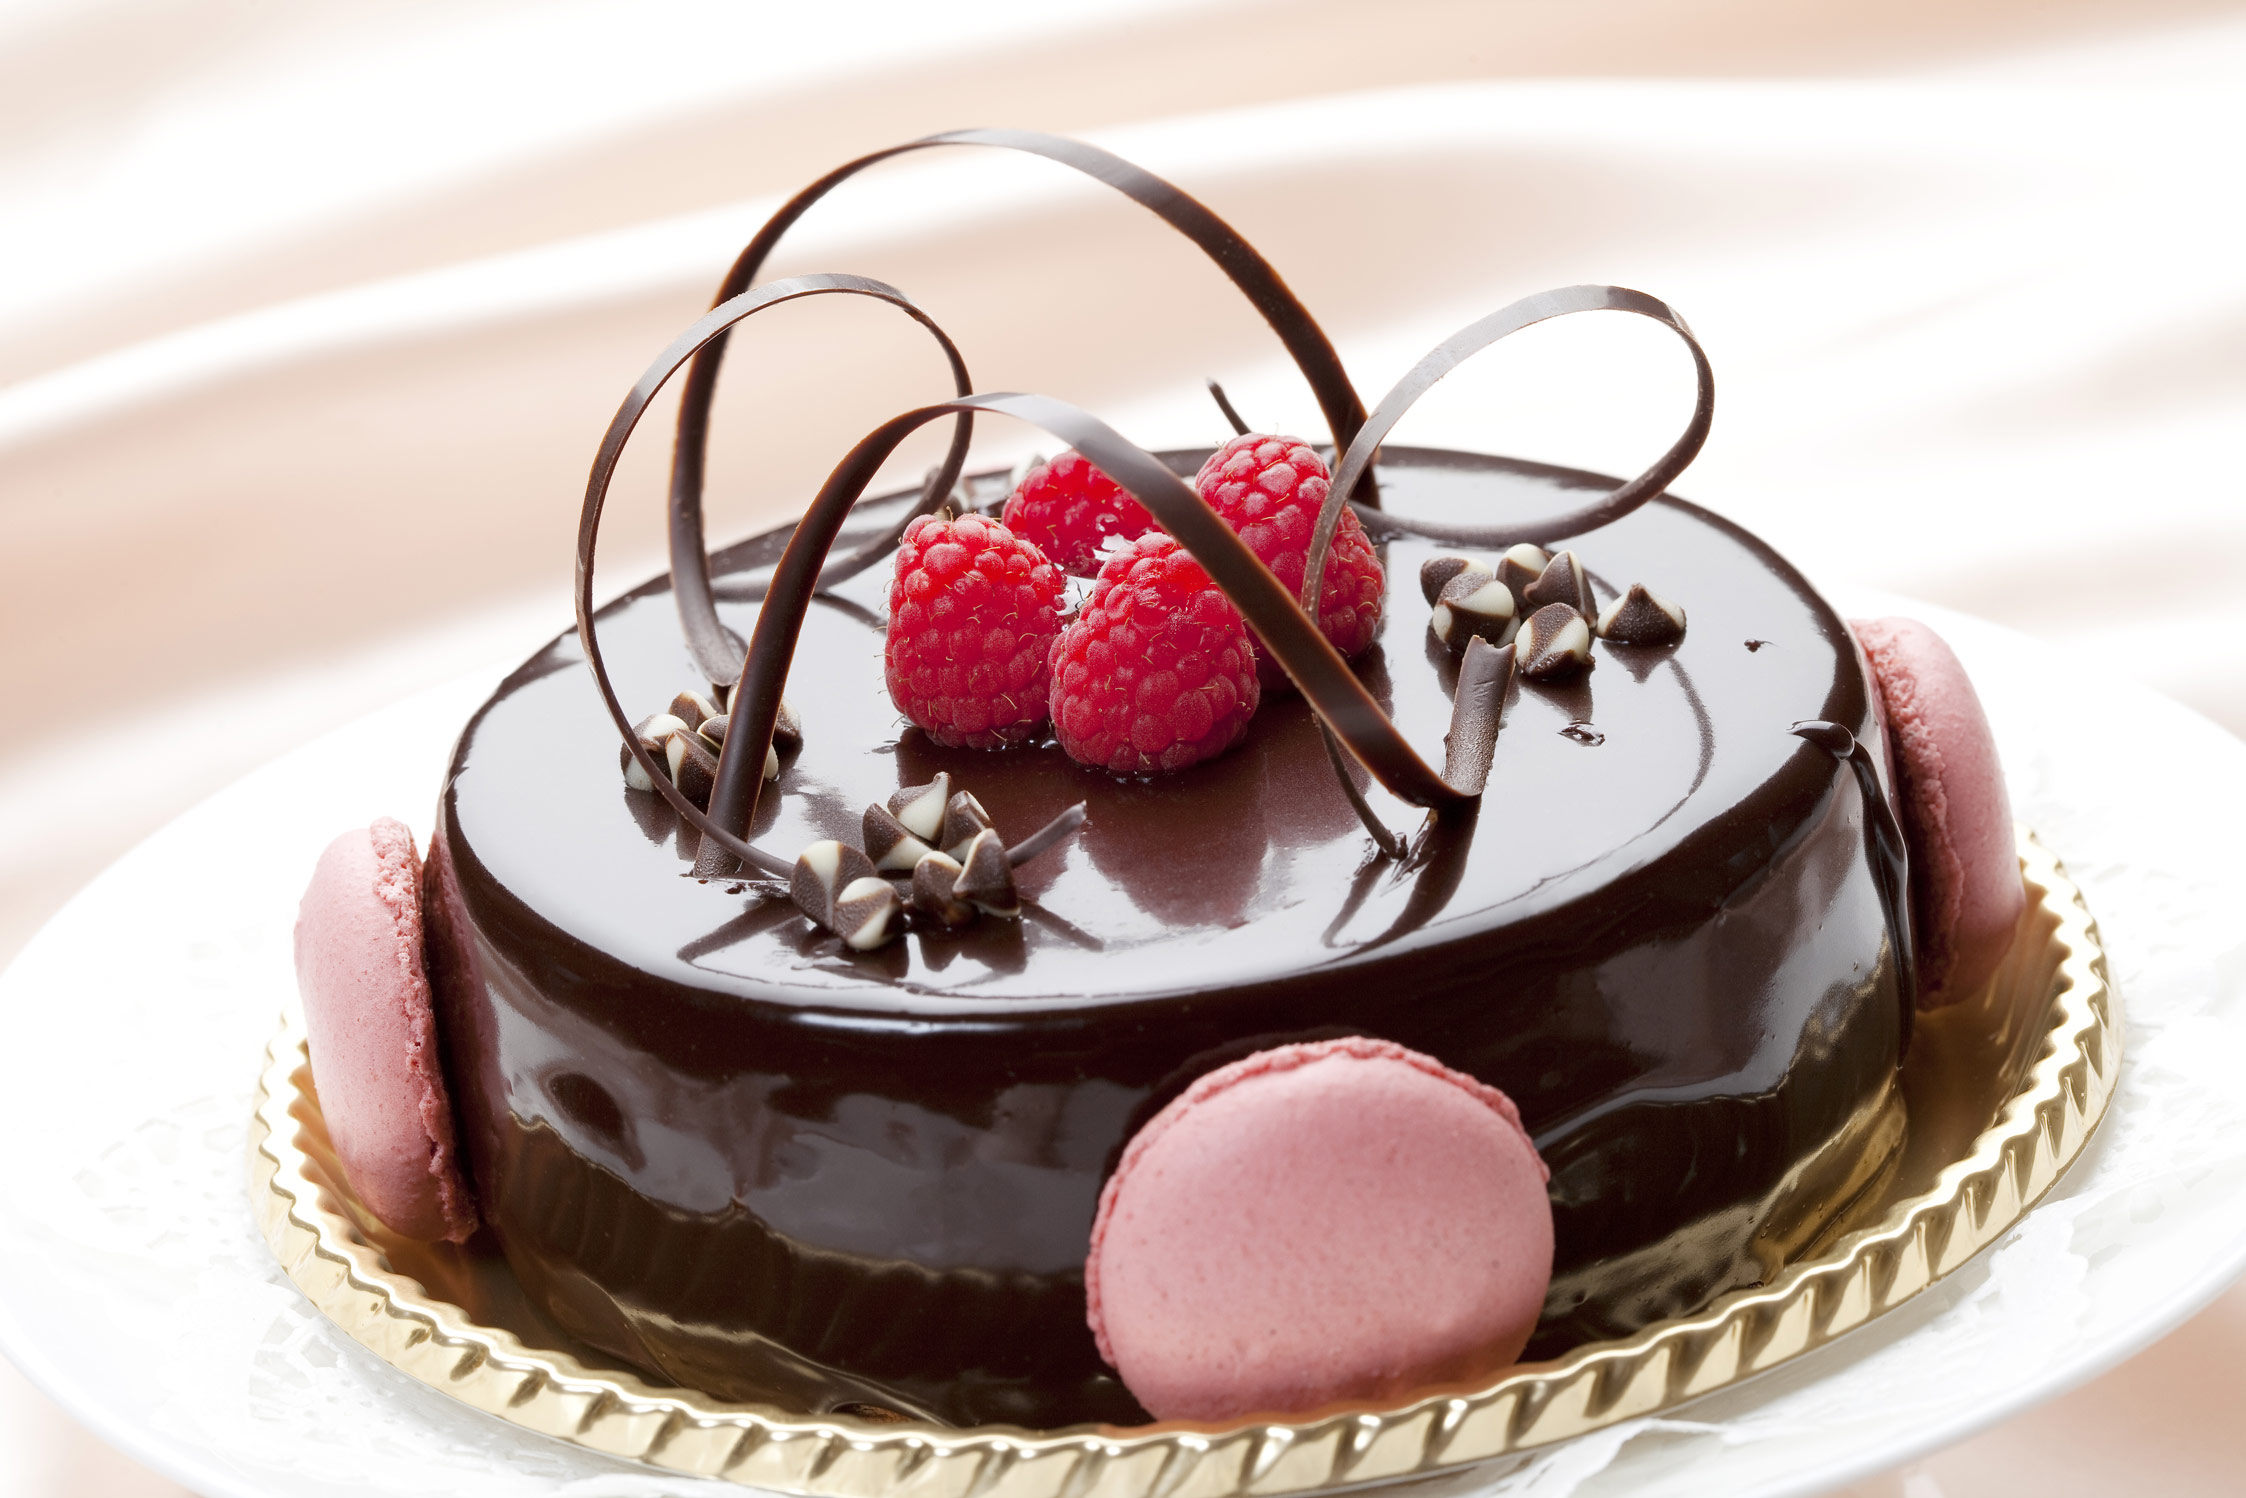 Chocolate Truffle Cake Images : Order Chocolate Truffle Cake Online, Buy and Send ...